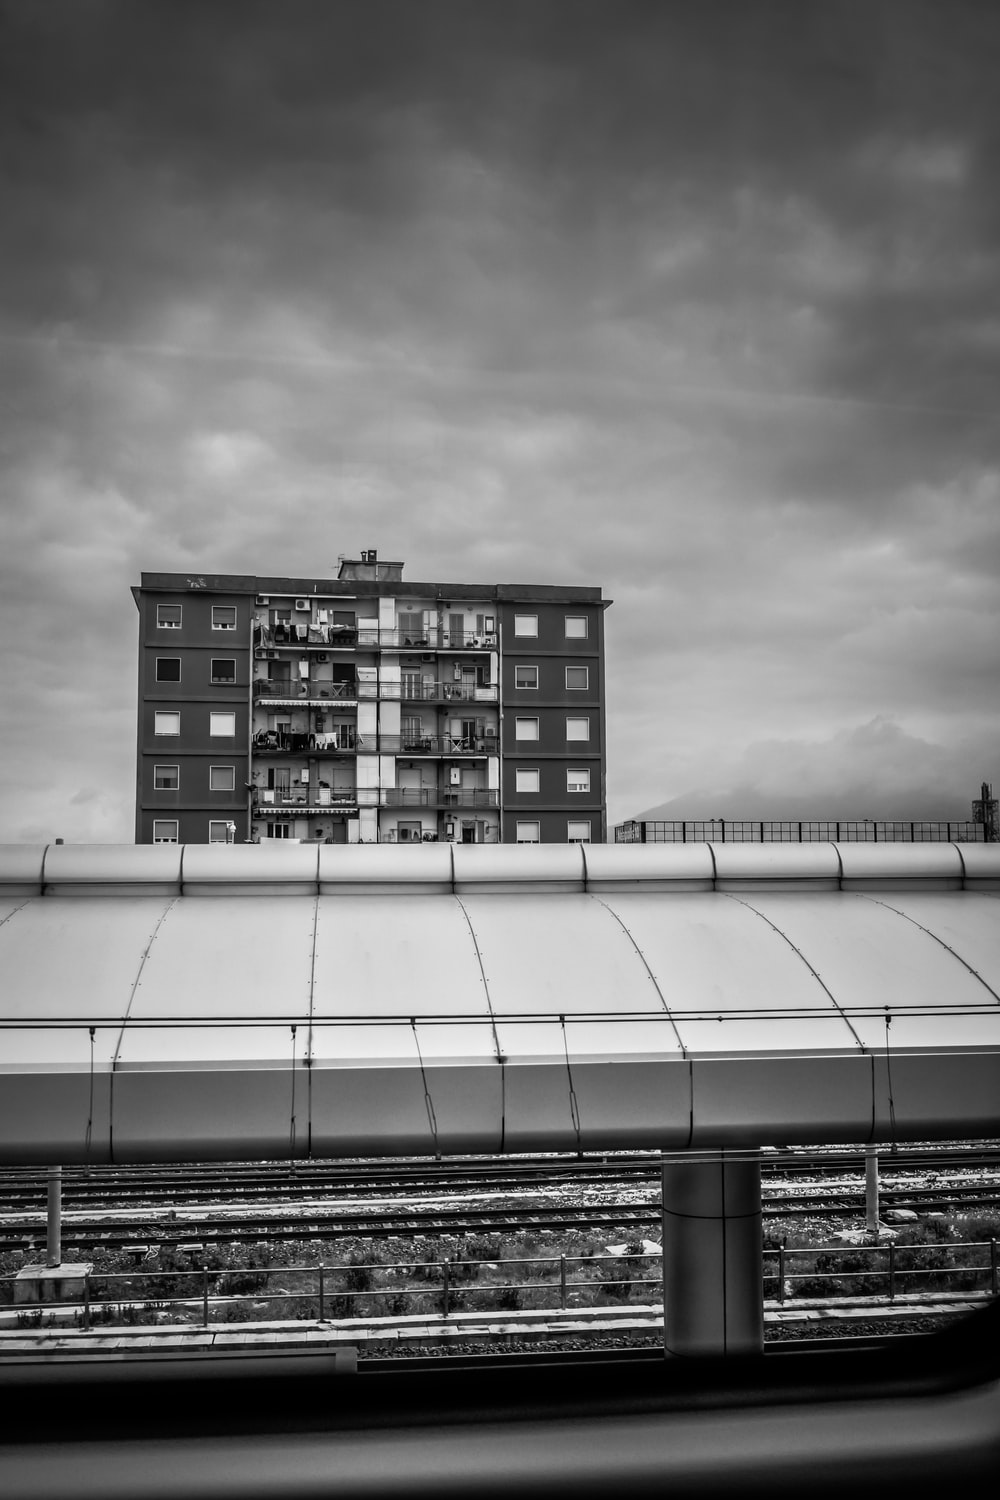 grayscale photo of building under cloudy sky